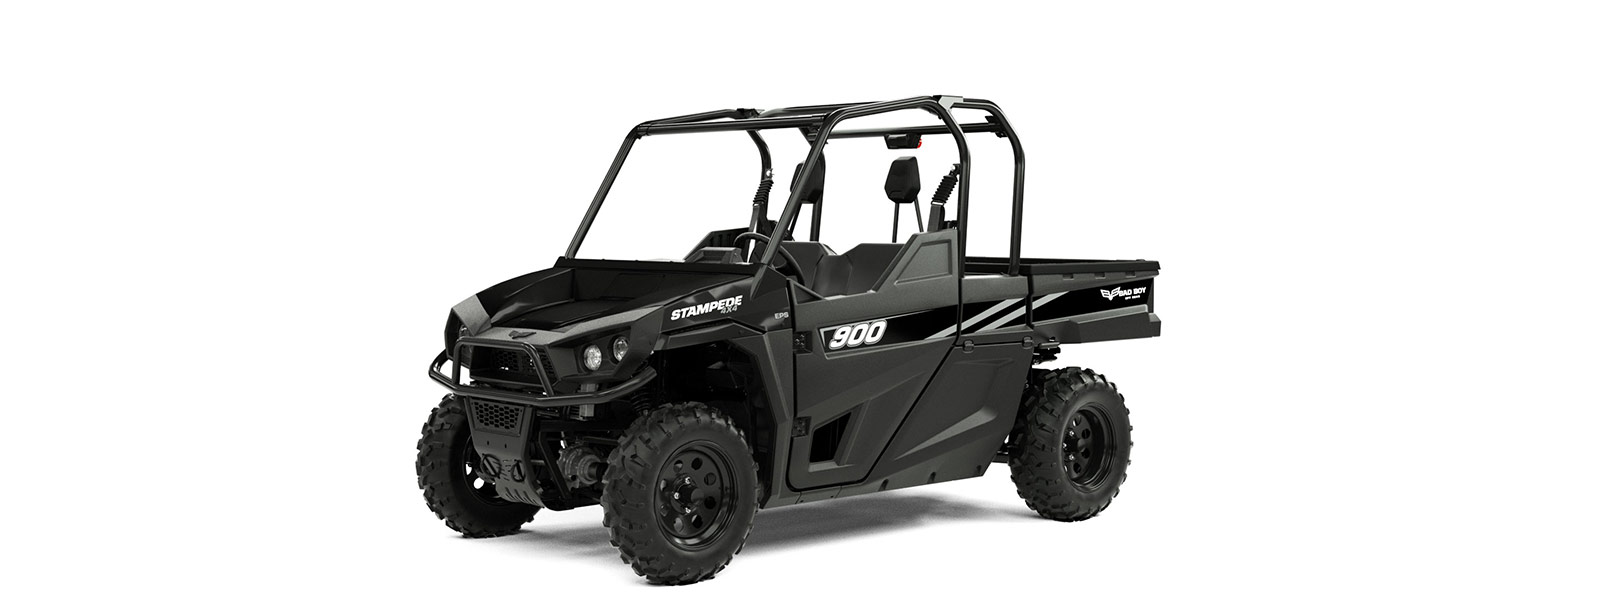 Textron Targets Utv Market With New Stampede 900 Models